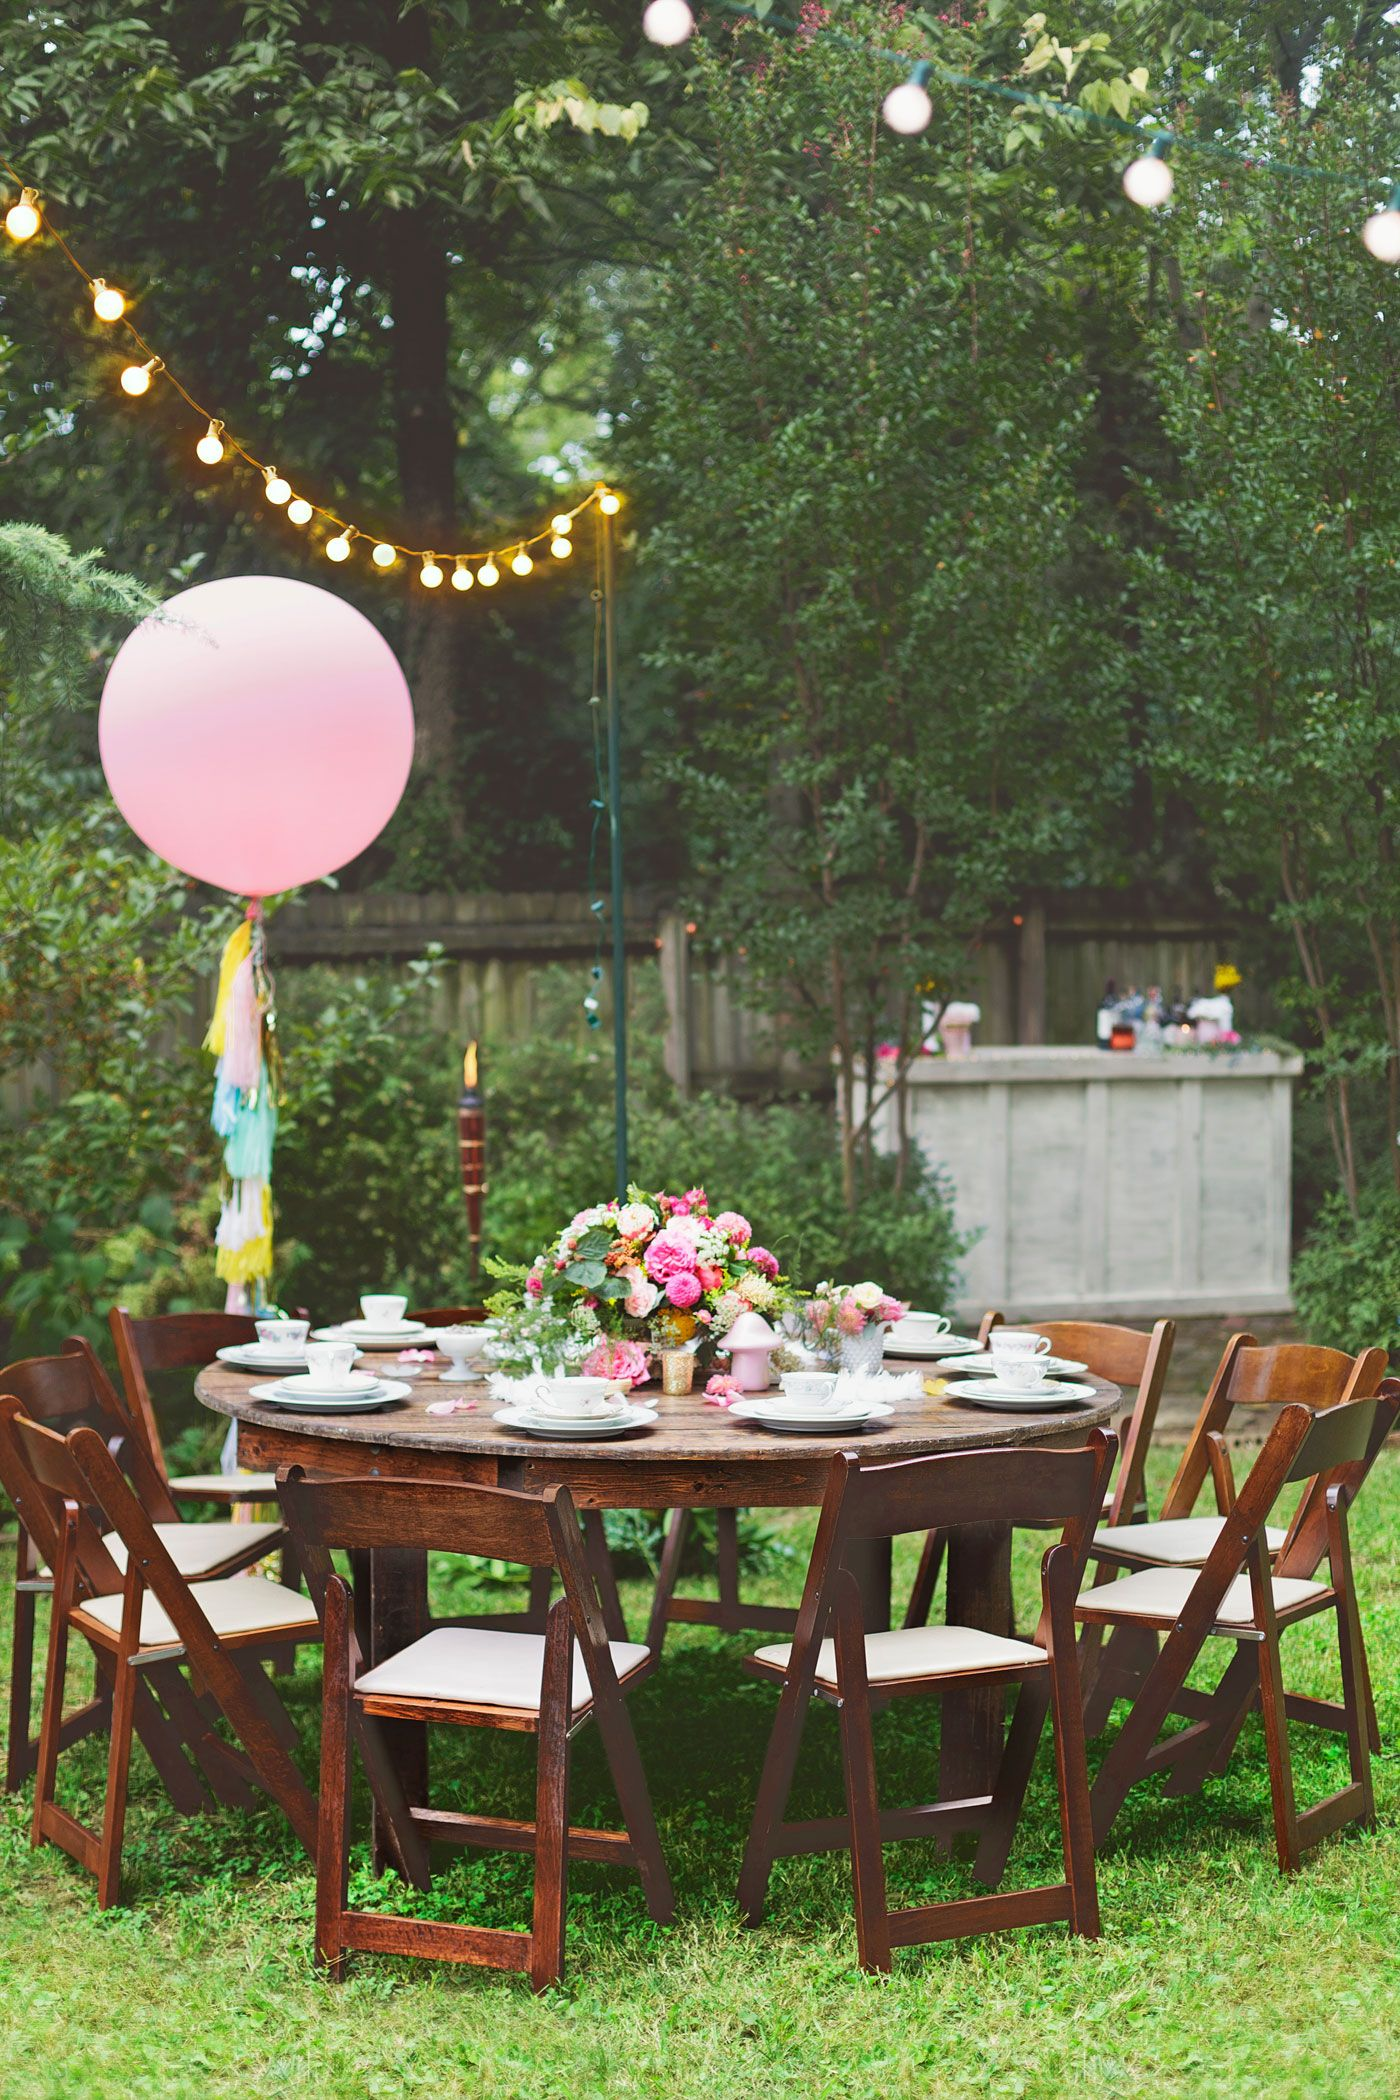 "Kacey's Nashville backyard was transformed into what she describes as an ""Alice in Wonderland-esque garden party"" thanks to twinkling lights, festive garlands and balloons, and a dance floor."